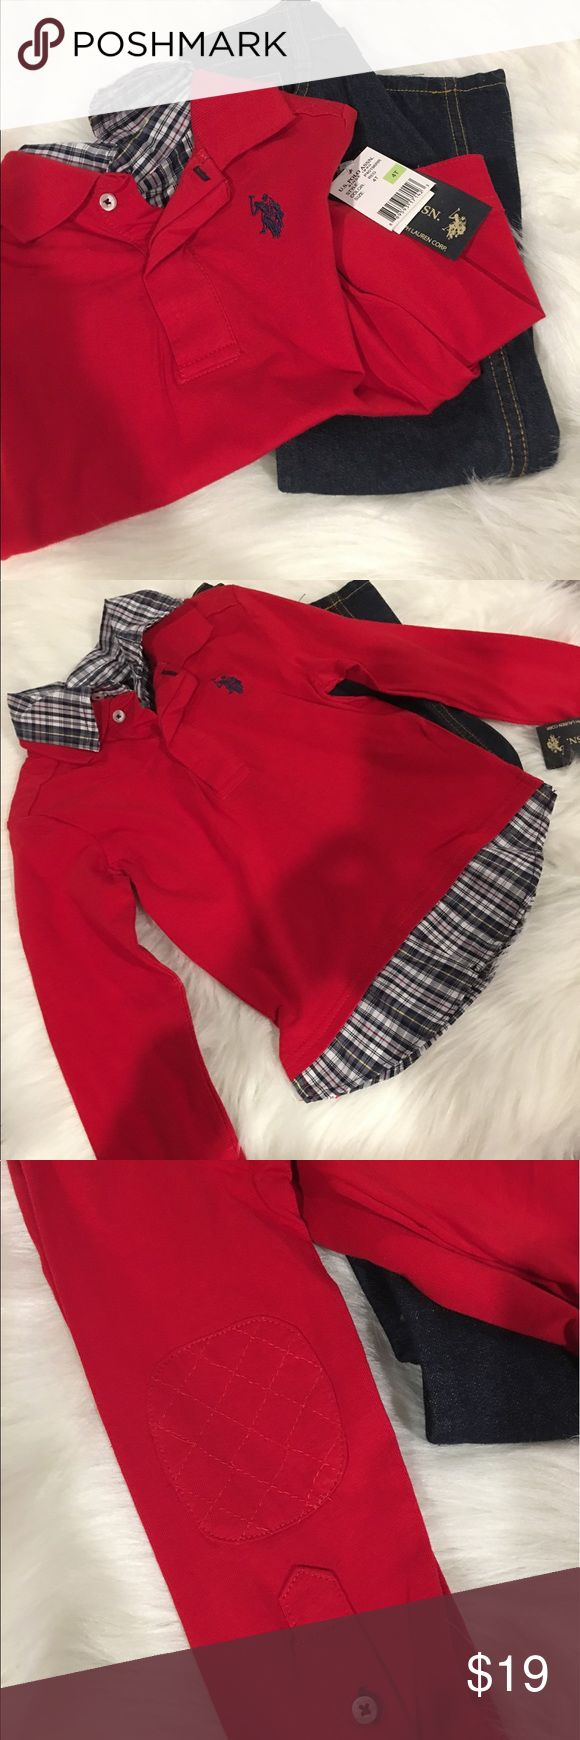 Toddler Boys Blue Jean Outfit Red Long sleeve Toddler Boy Red Long sleeve Blue Jean outfit...New w/tags...in perfect condition no stains, no tears...perfect Christmas Winter Outfit U.S. Polo Assn. Matching Sets